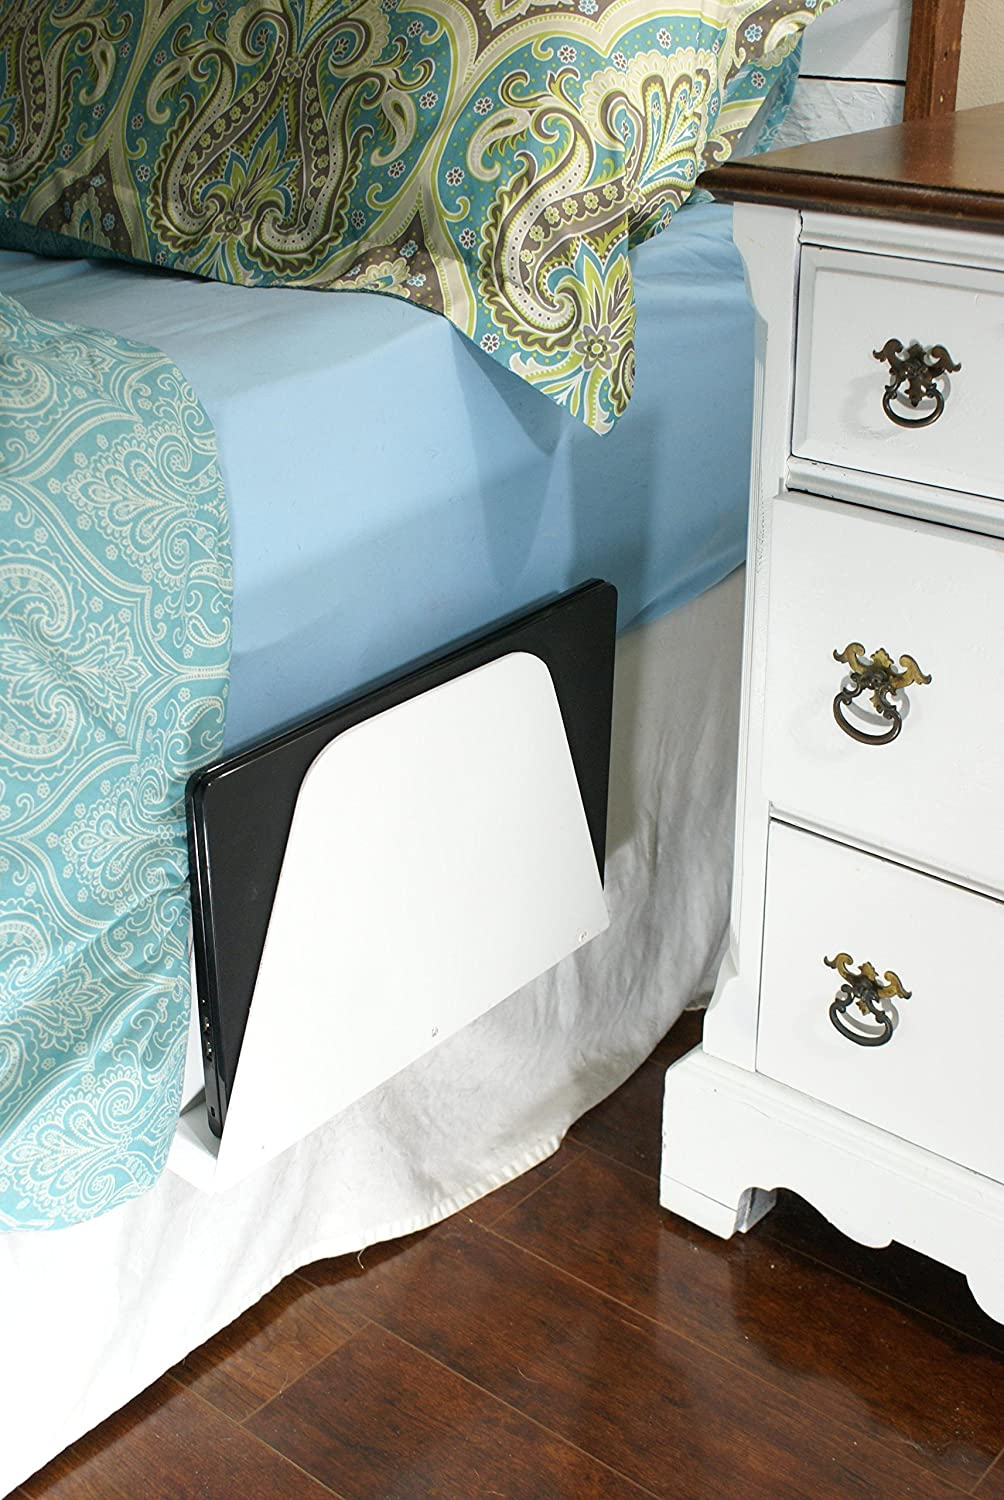 Bedside Caddy, Laptop, Tablet or eReader storage, Computer stand, Magazine Rack, eReader holder, White